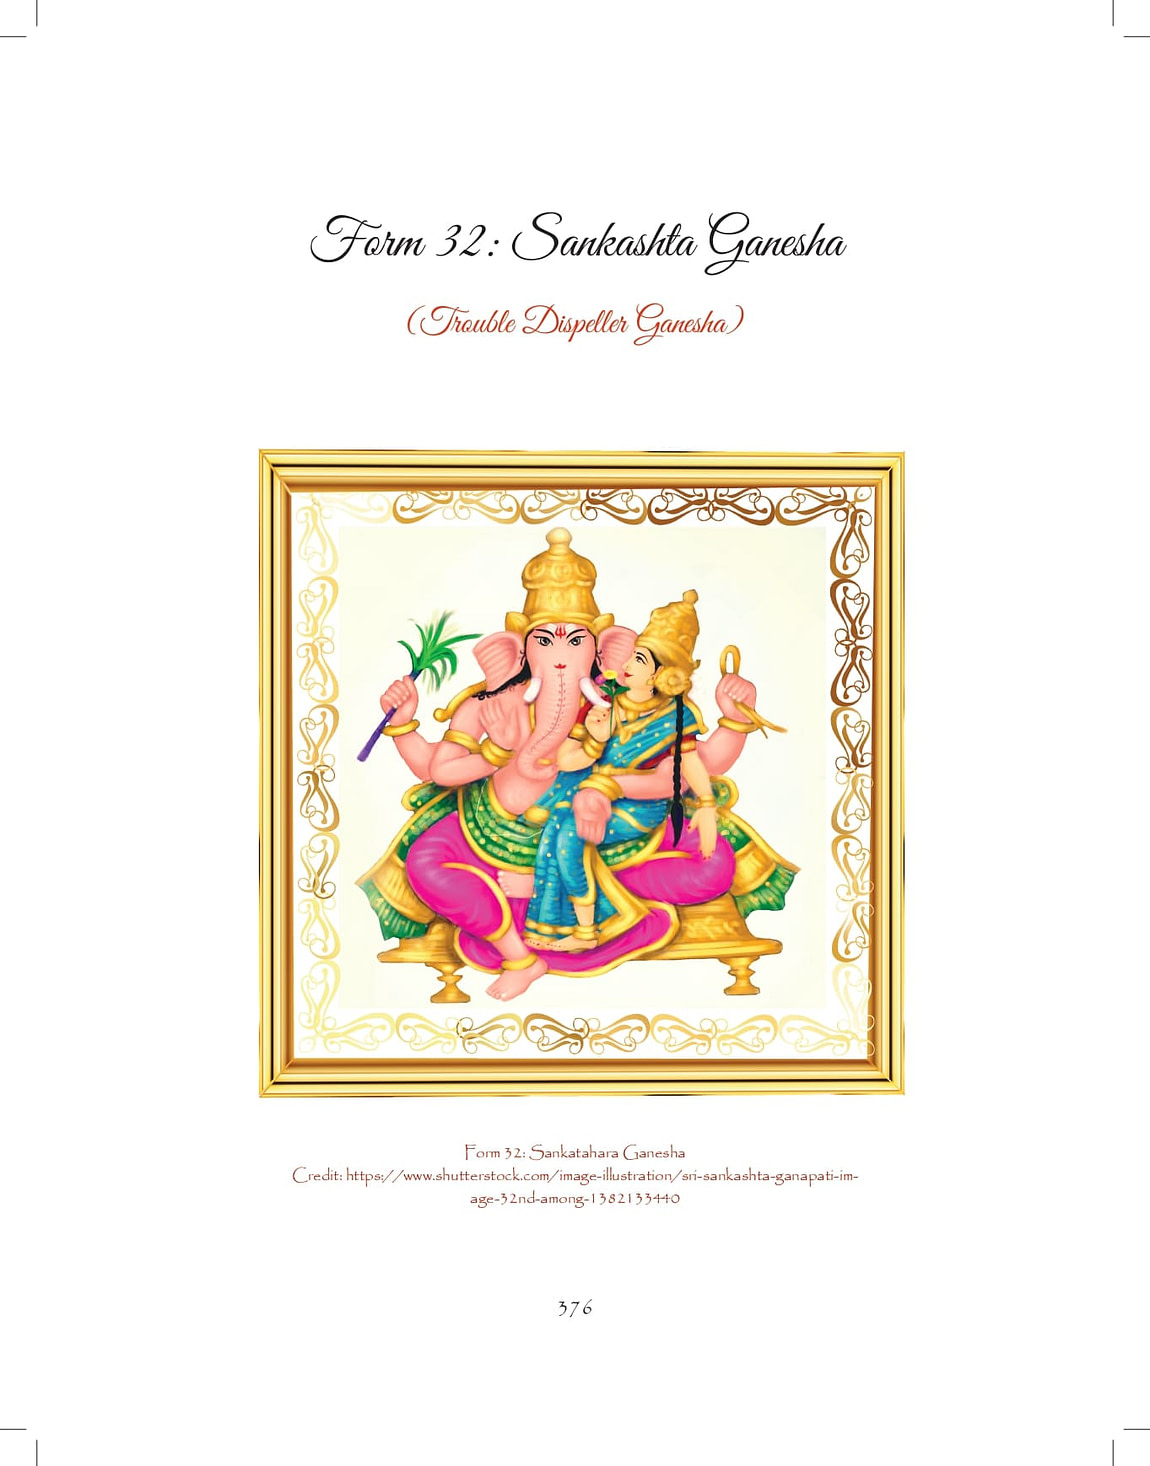 Ganesh-print_pages-to-jpg-0376.jpg